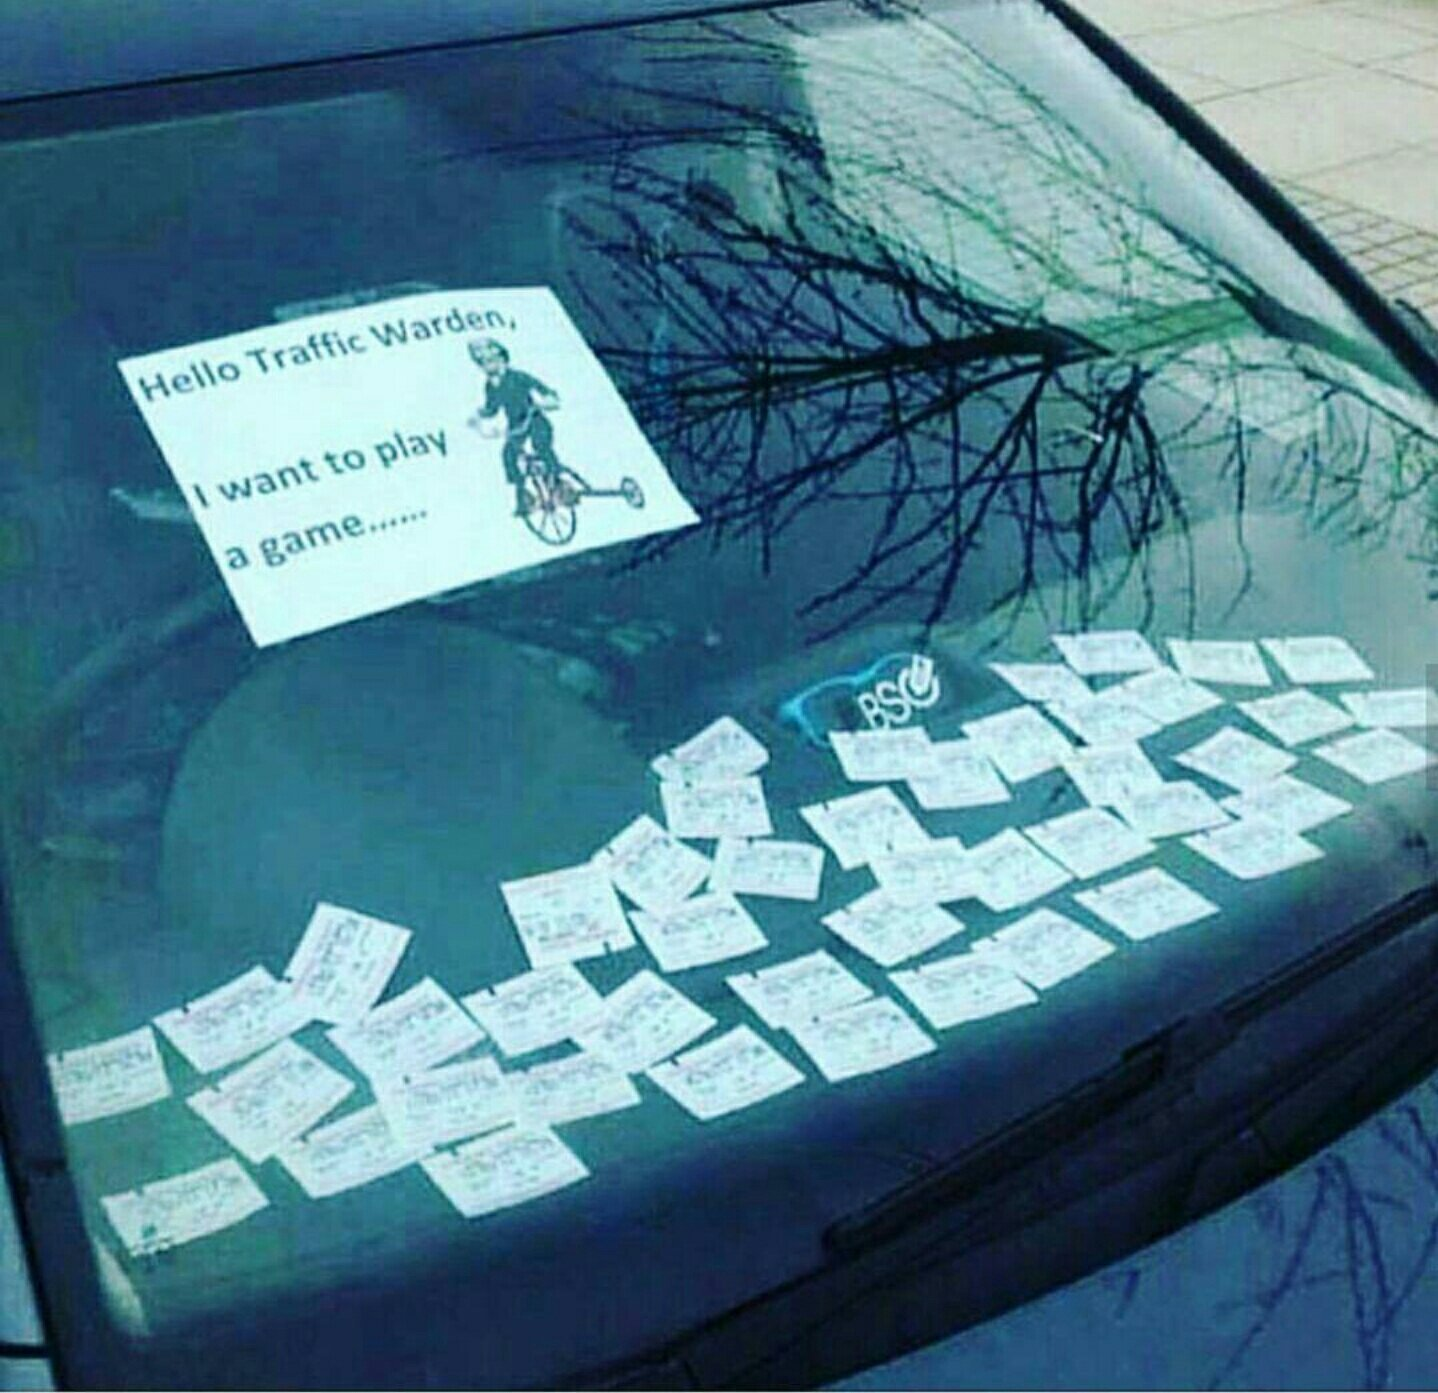 Parking enforcer's day just got worse - meme